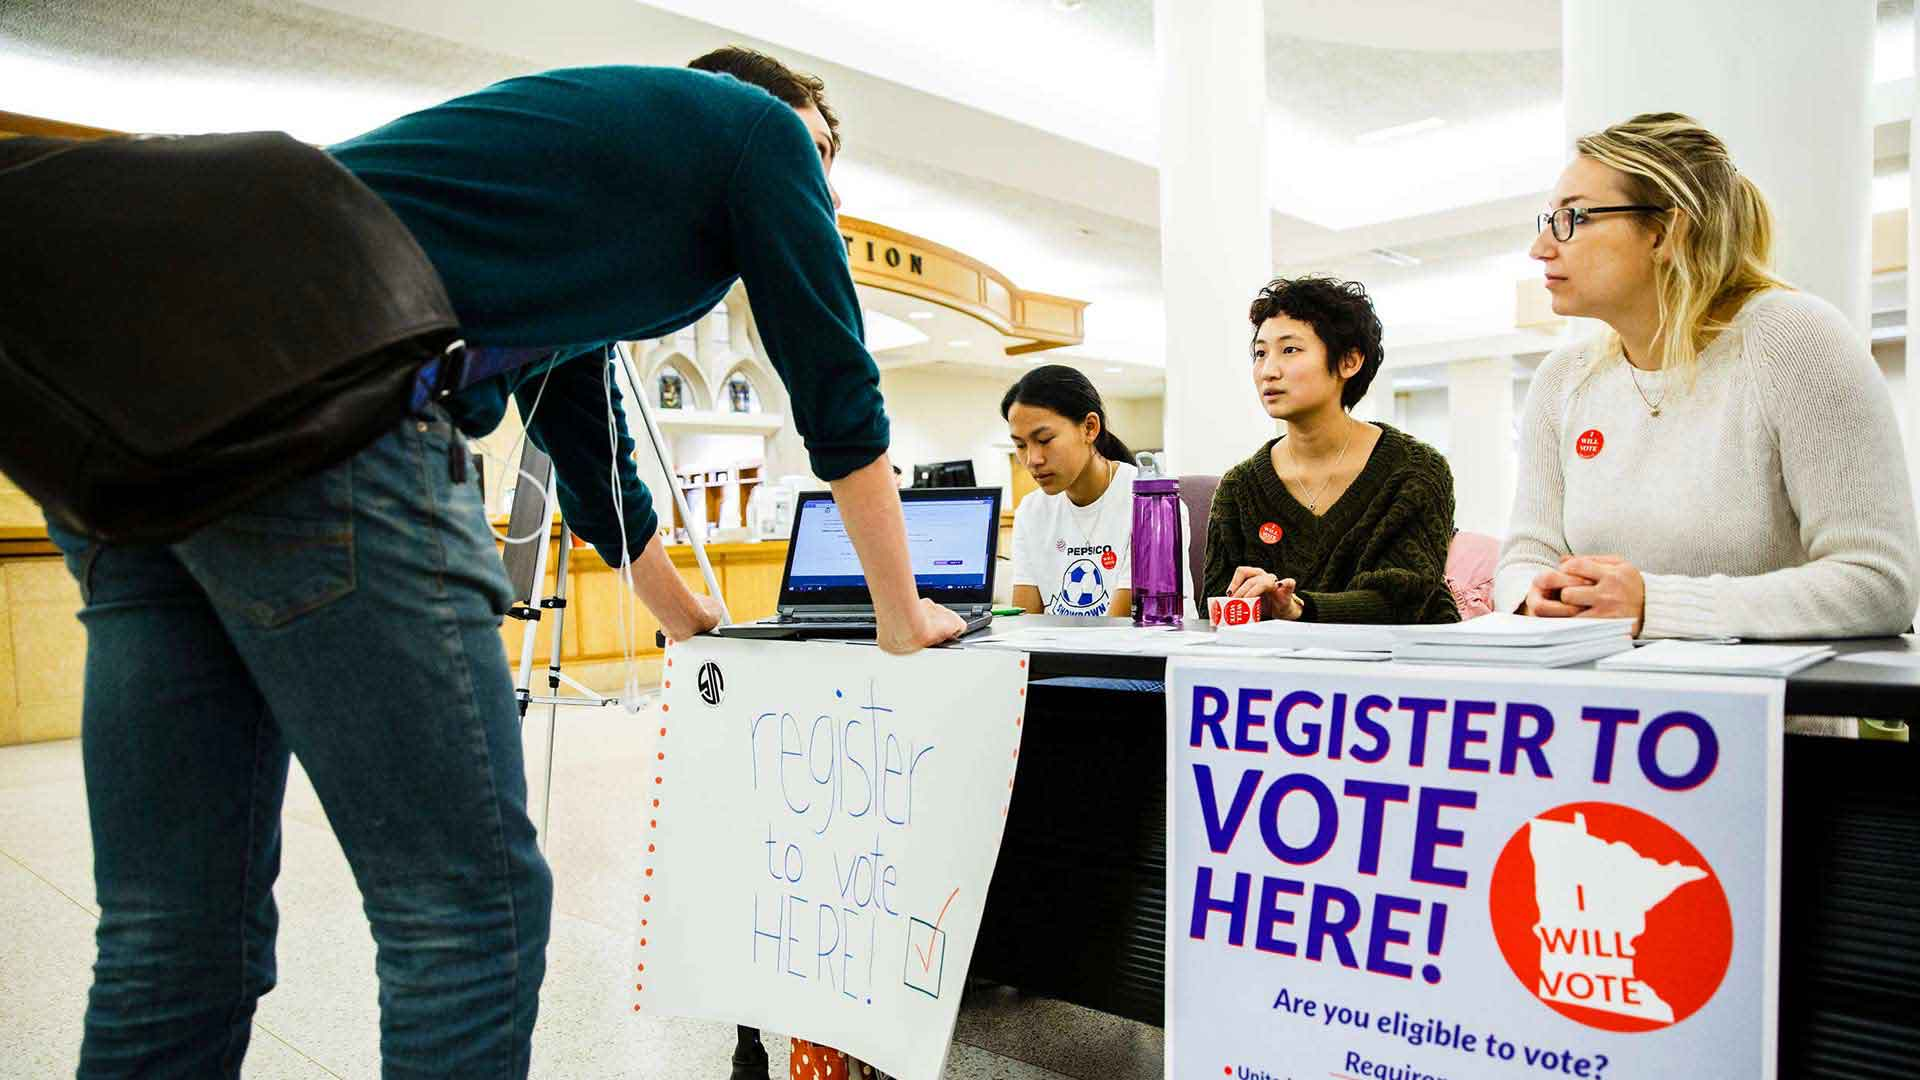 Students help a student register to vote